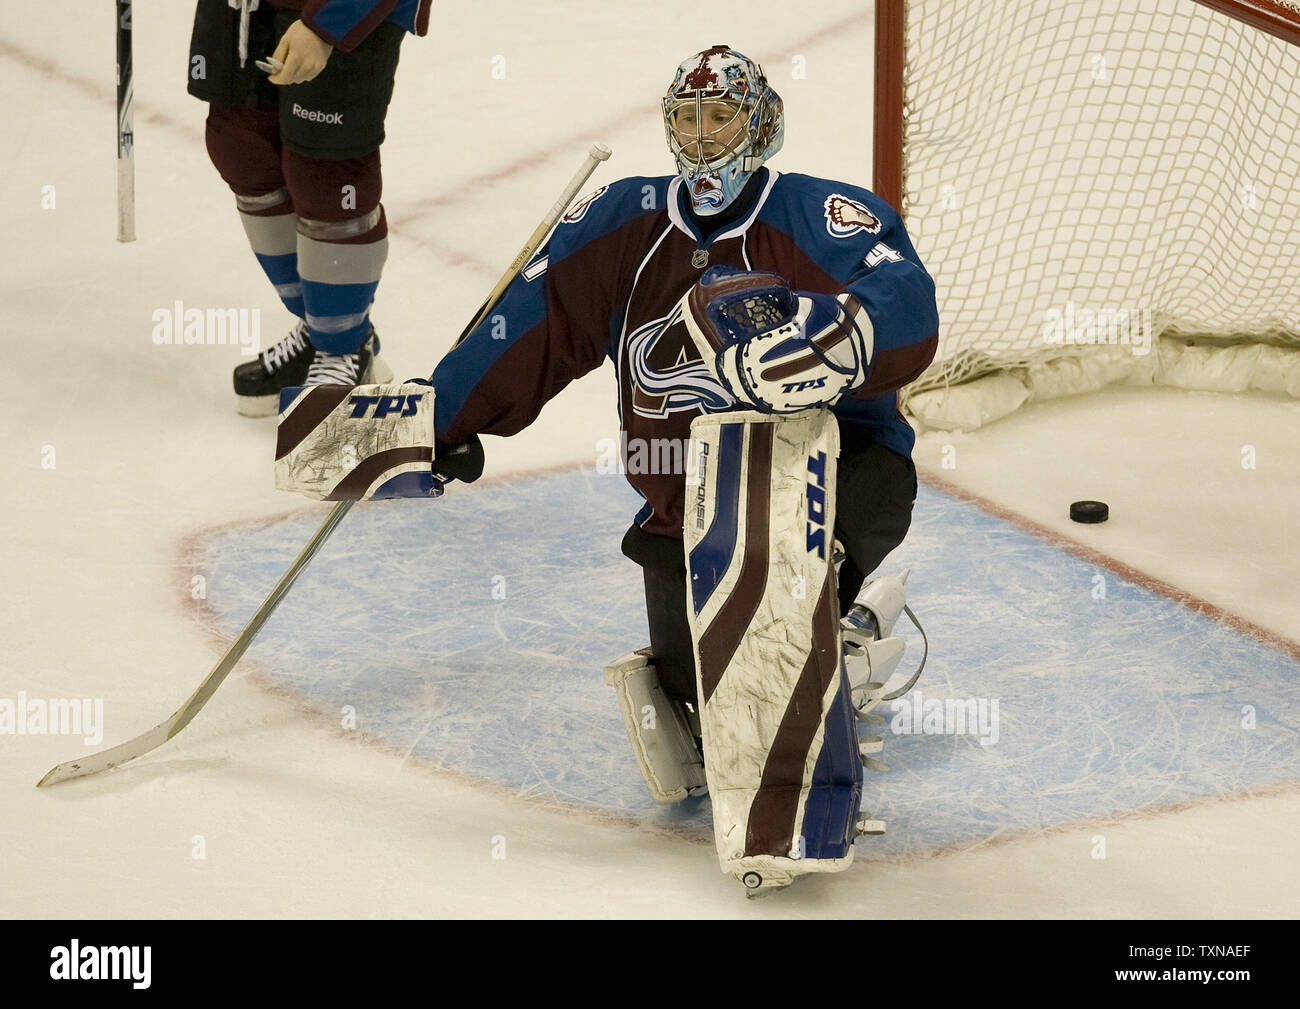 Colorado Avalanche goalie Craig Anderson reacts after allowing the game-winning goal by the Vancouver Canucks during the third period at the Pepsi Center on March 9, 2010 in Denver.  Vancouver widens their Northwest divison lead beating Colorado 6-4 in a come from behind victory.        UPI/Gary C. Caskey - Stock Image